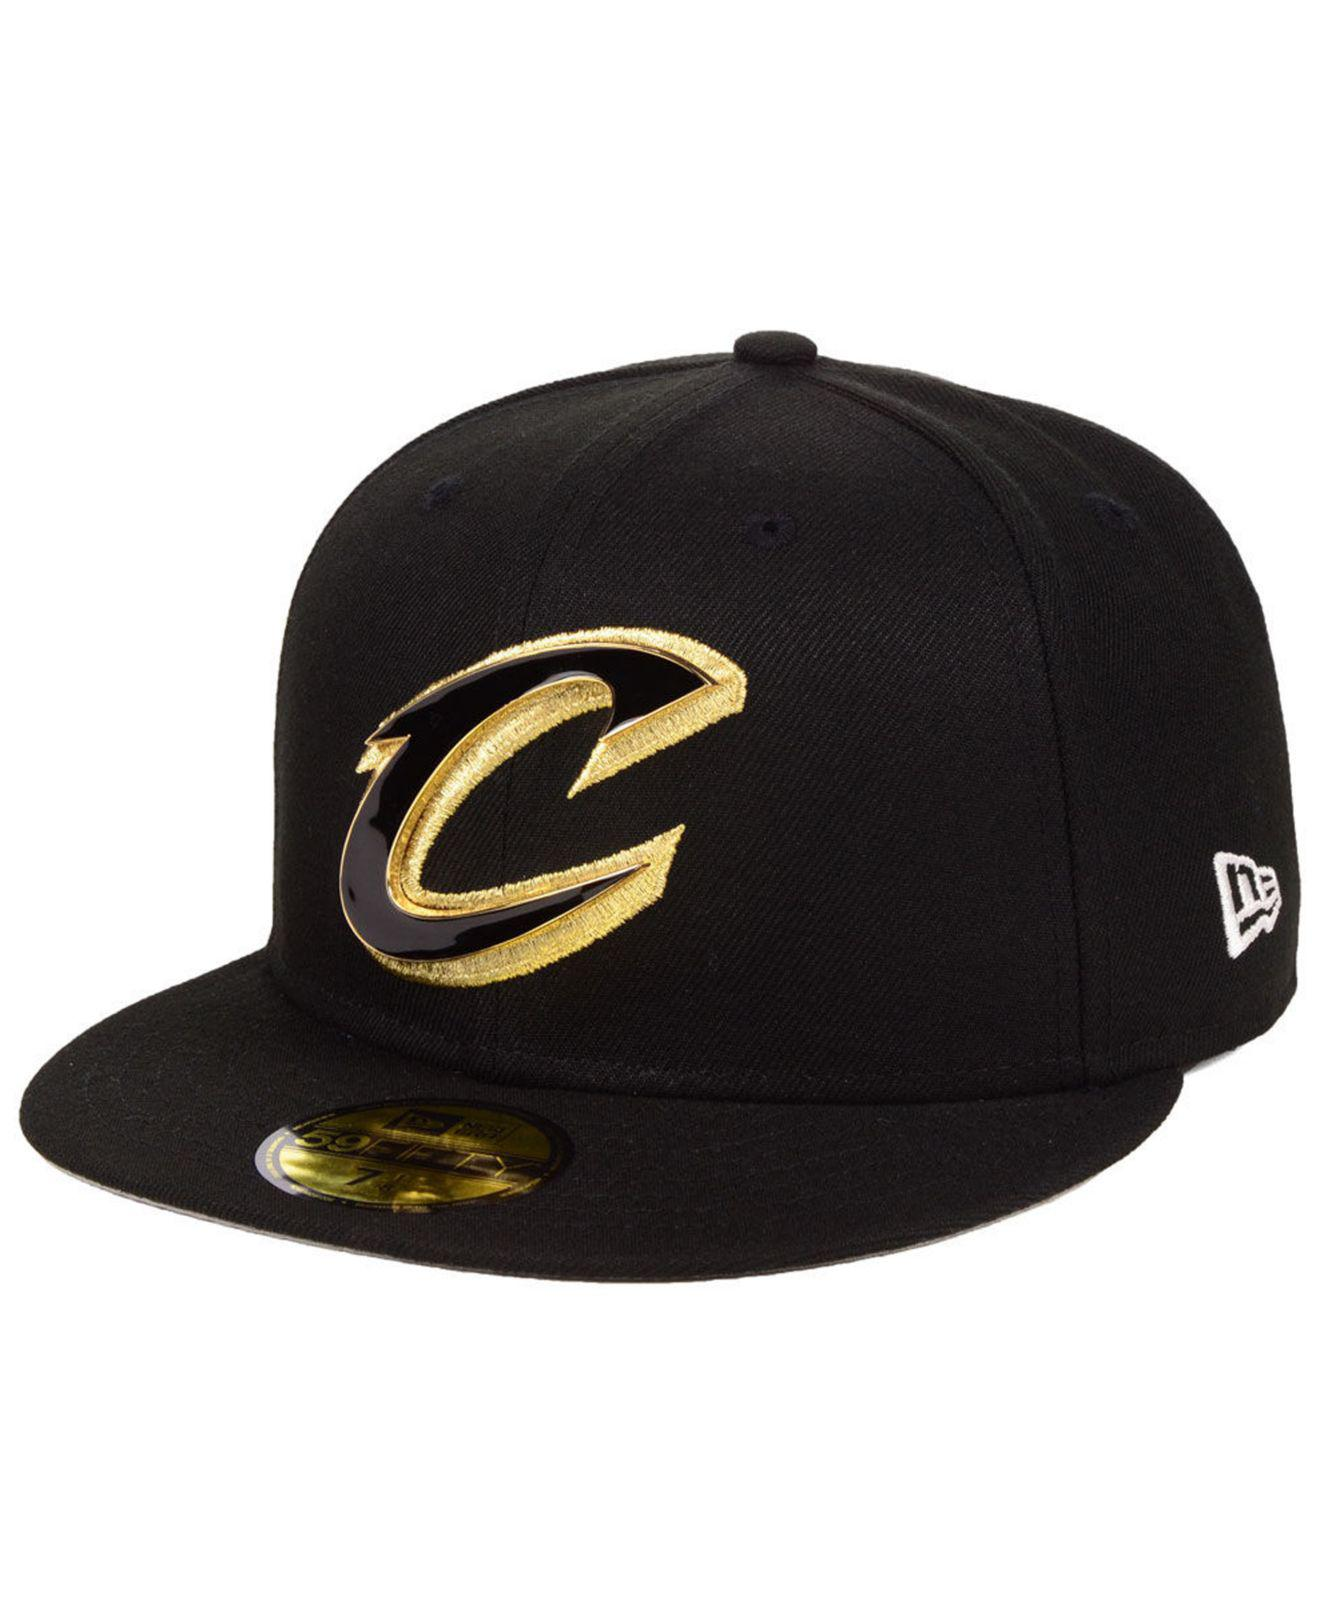 1c8cb2bfbd6 Lyst - Ktz Cleveland Cavaliers Metal Mash Up 59fifty-fitted Cap in ...